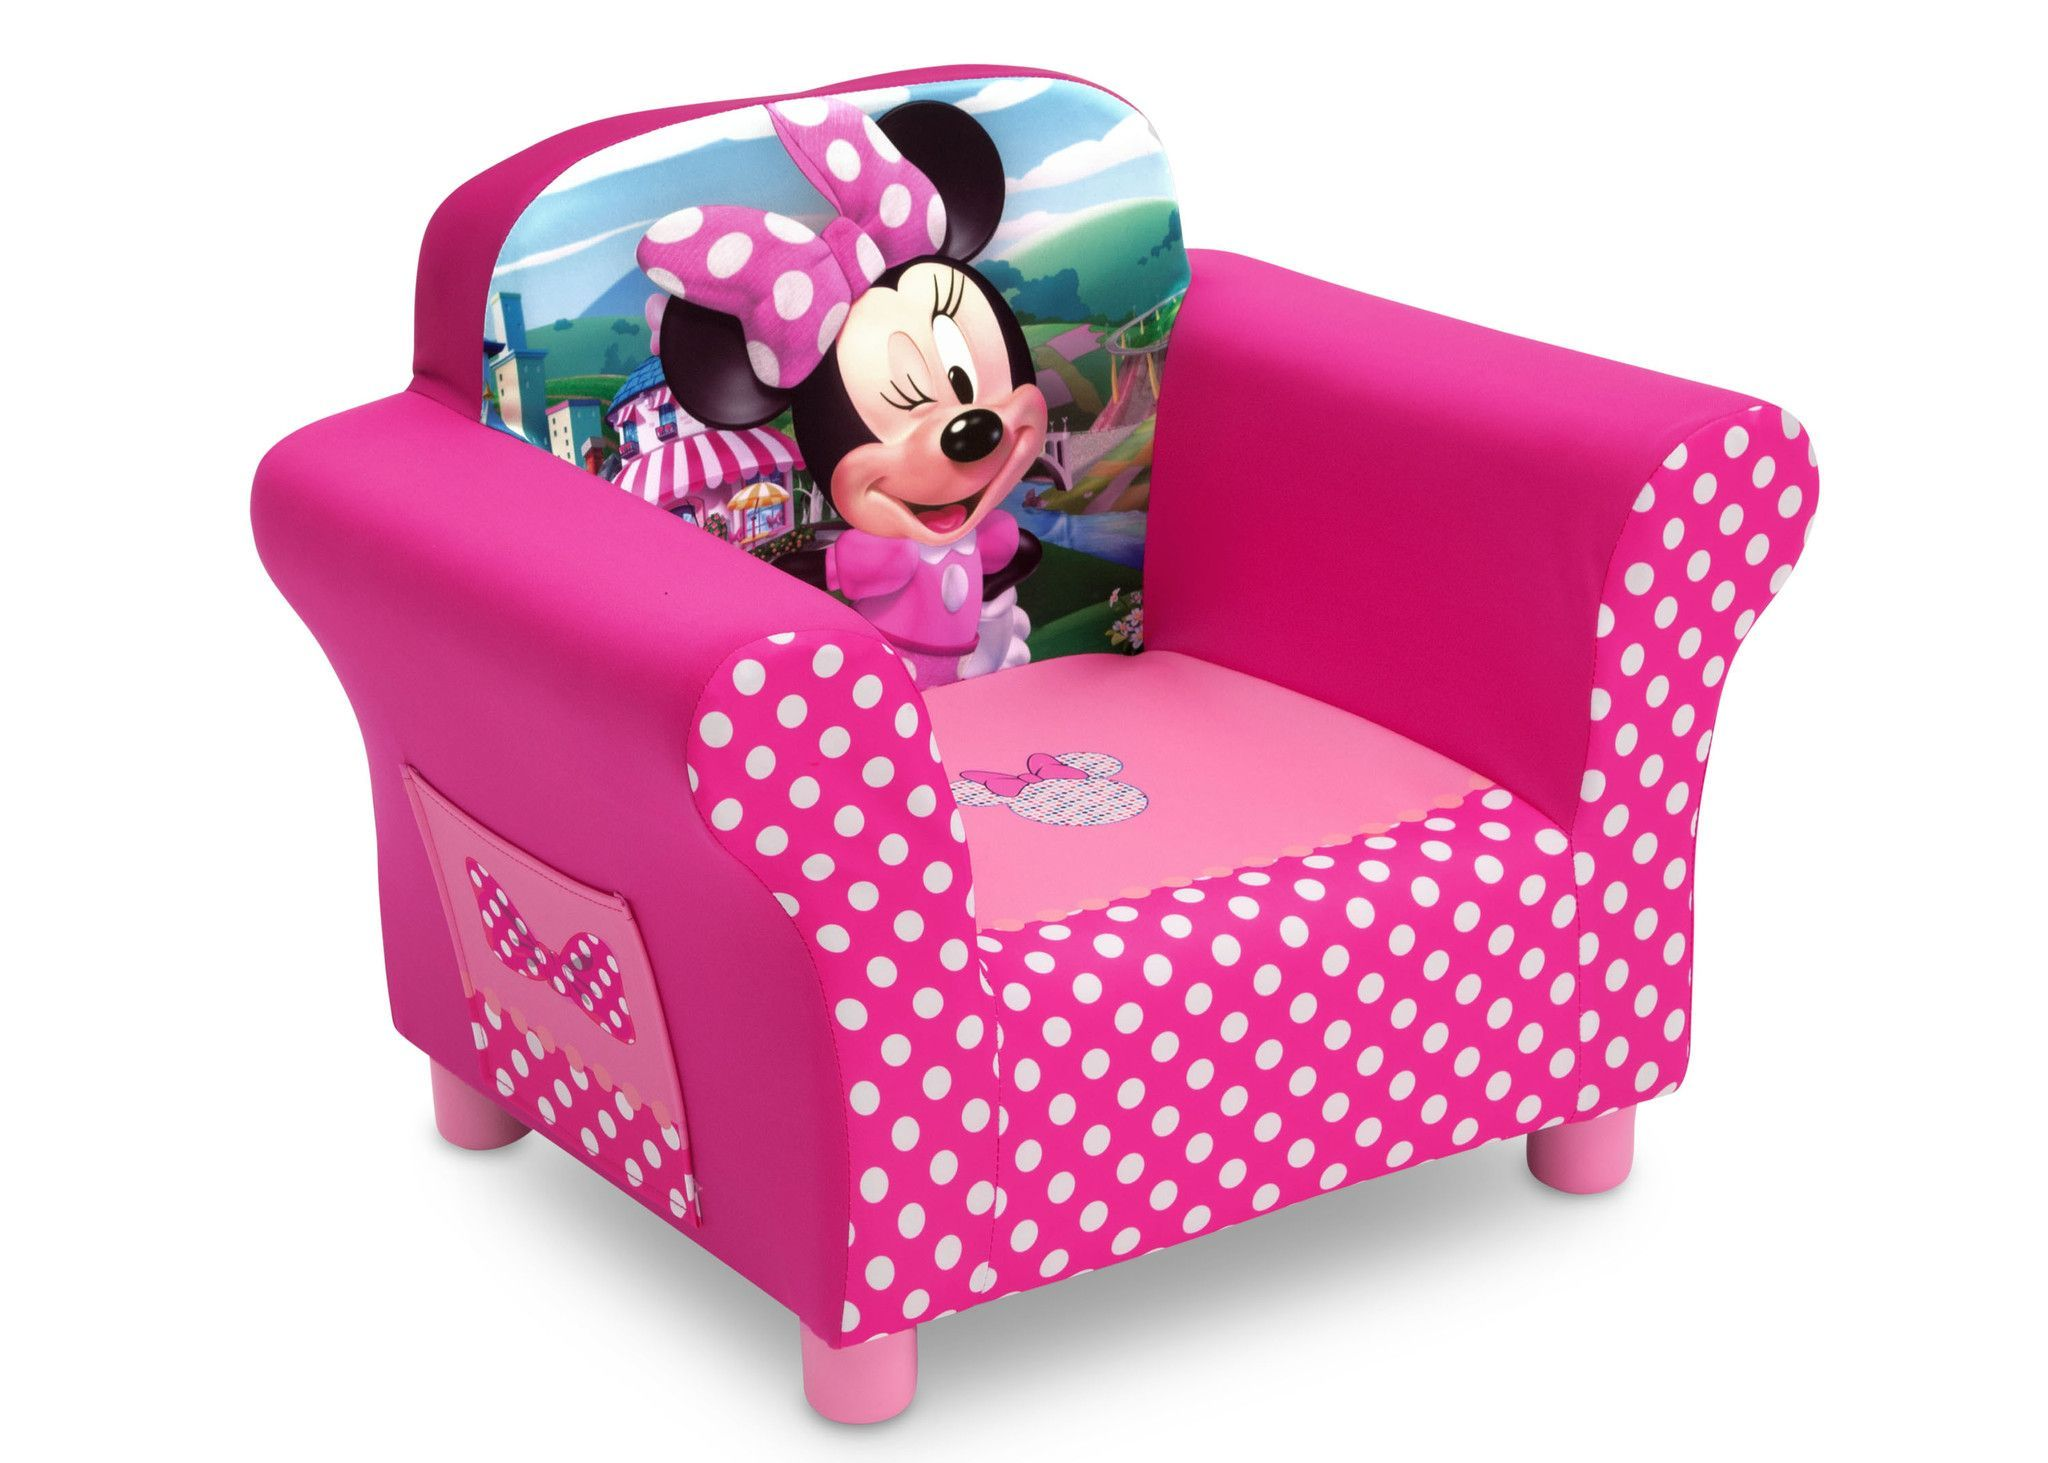 Minnie Mouse Upholstered Chair Intex Inflatable And Ottoman She 39ll Love To Snuggle Up In This Disney